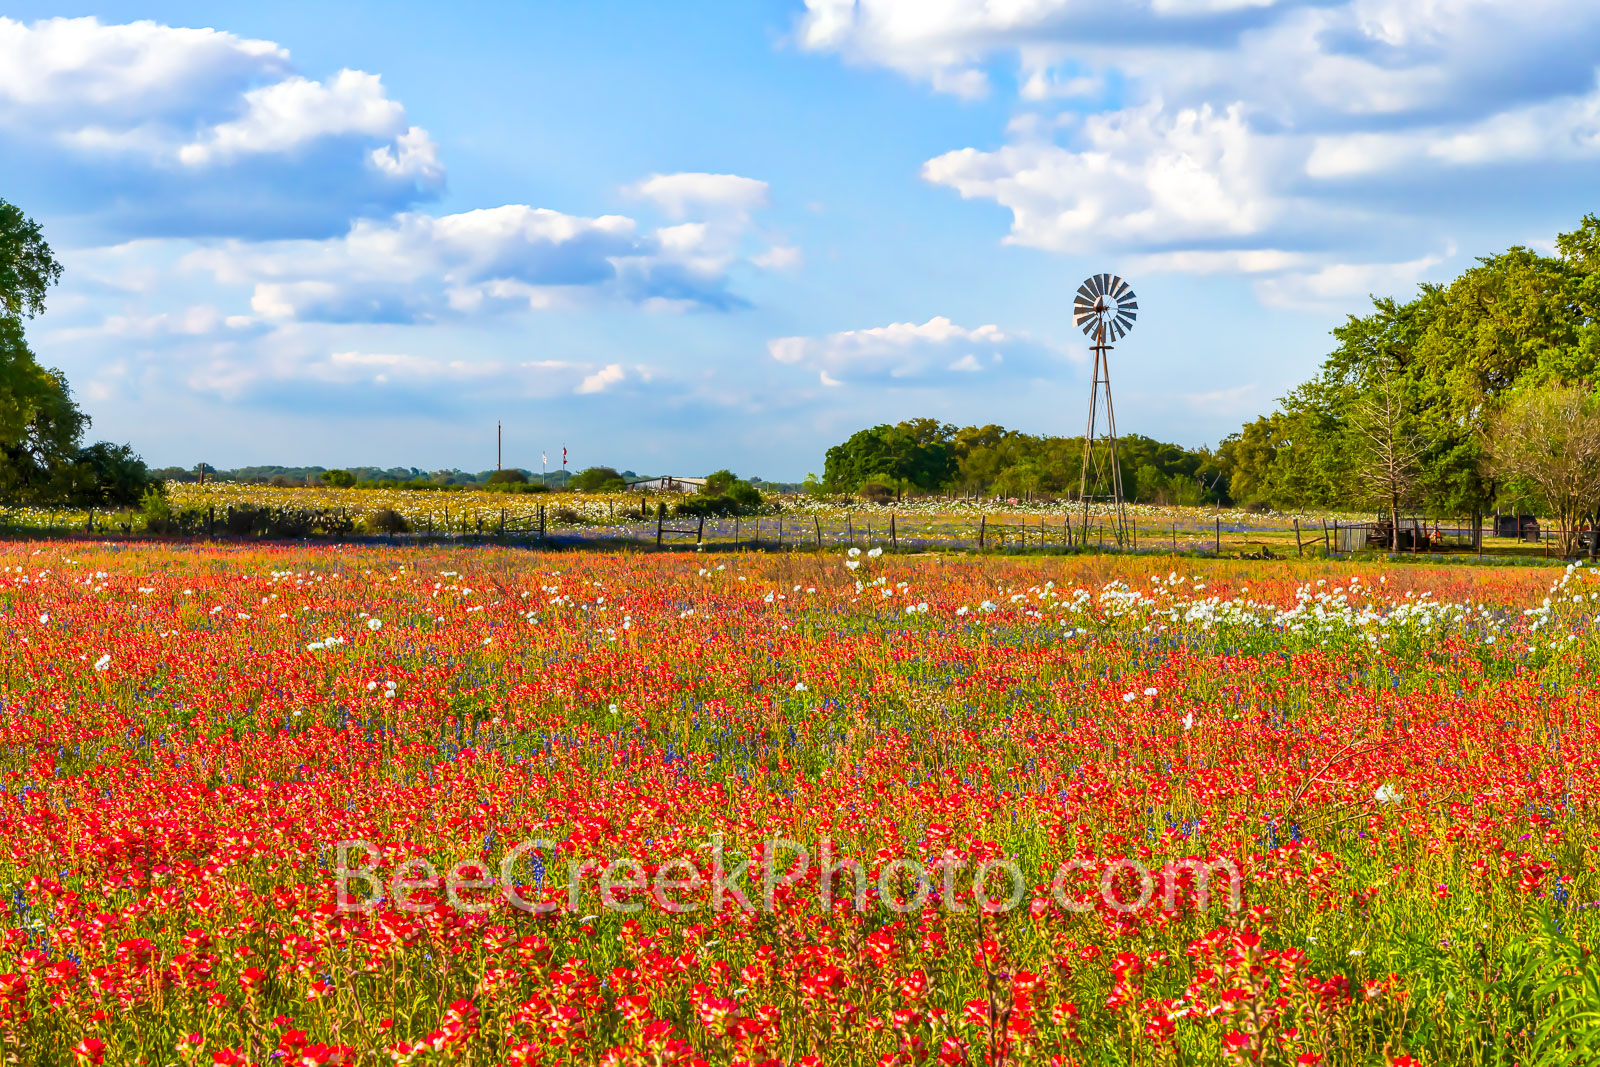 texas wildflowers, windmill, texas, indian paintbrush, poppies, colors, reds, white, texas landscape, images of texas, pictures of texas,  wildflowers in texas, red flowers, floral, plants.  texas wil, photo